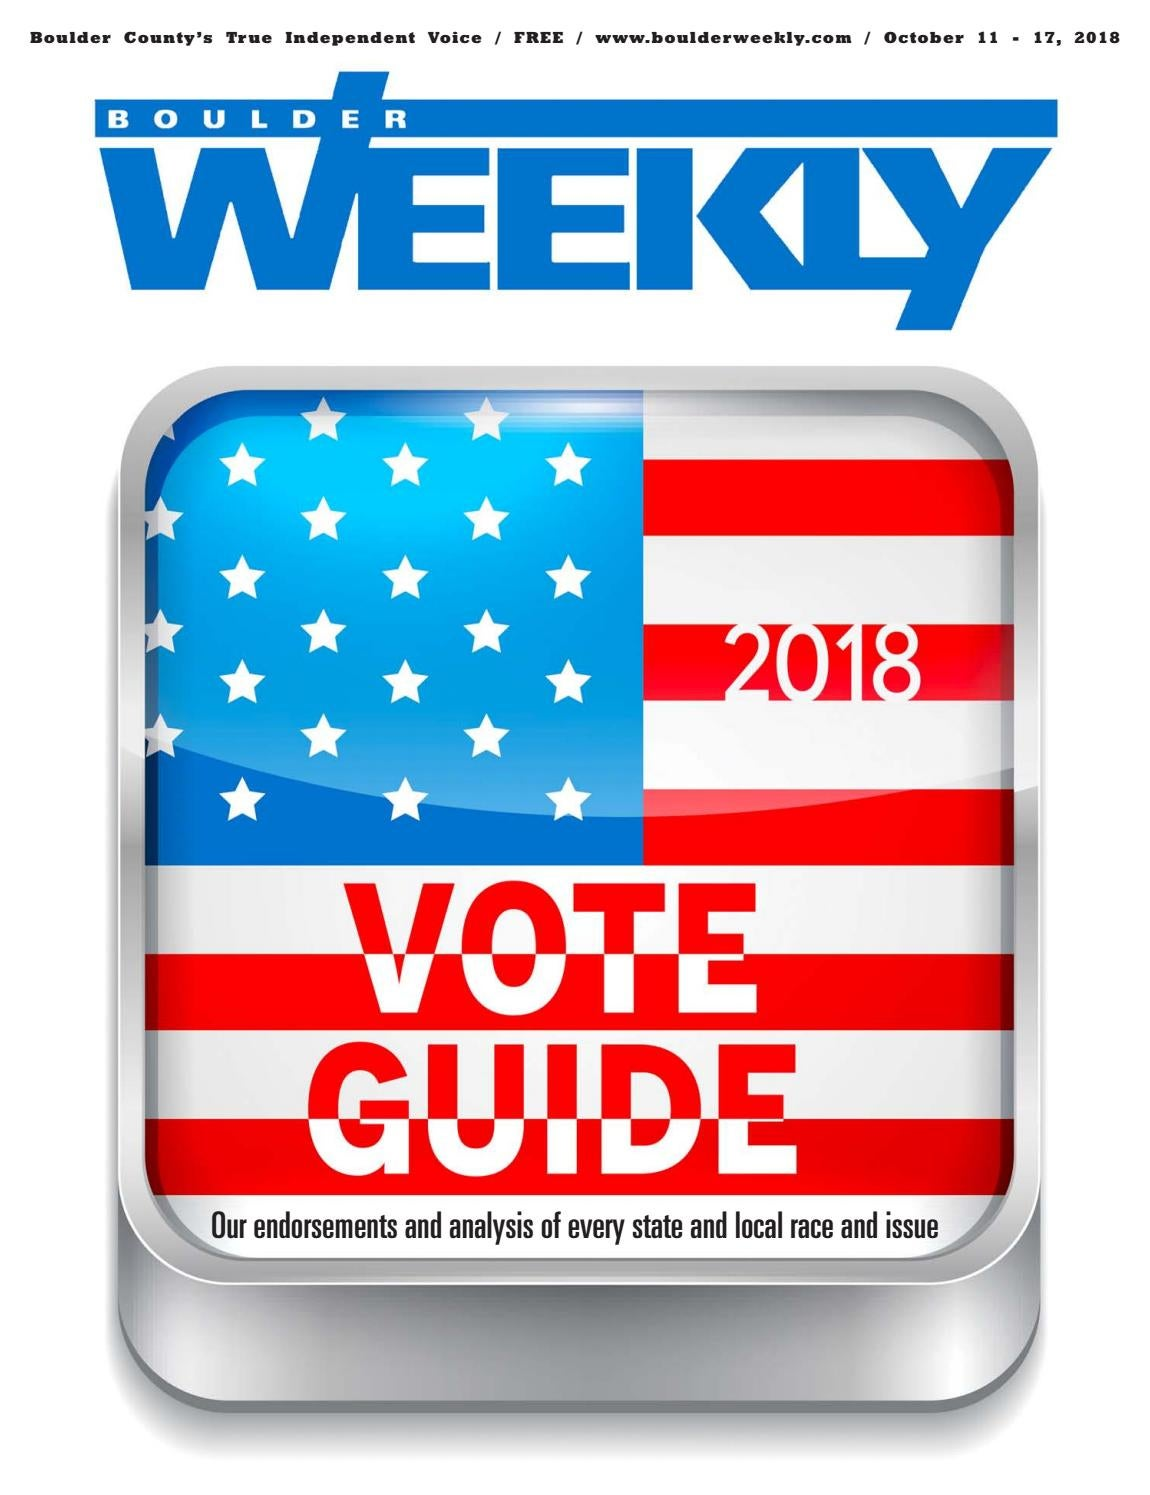 10 11 18 Boulder Weekly by Boulder Weekly - issuu